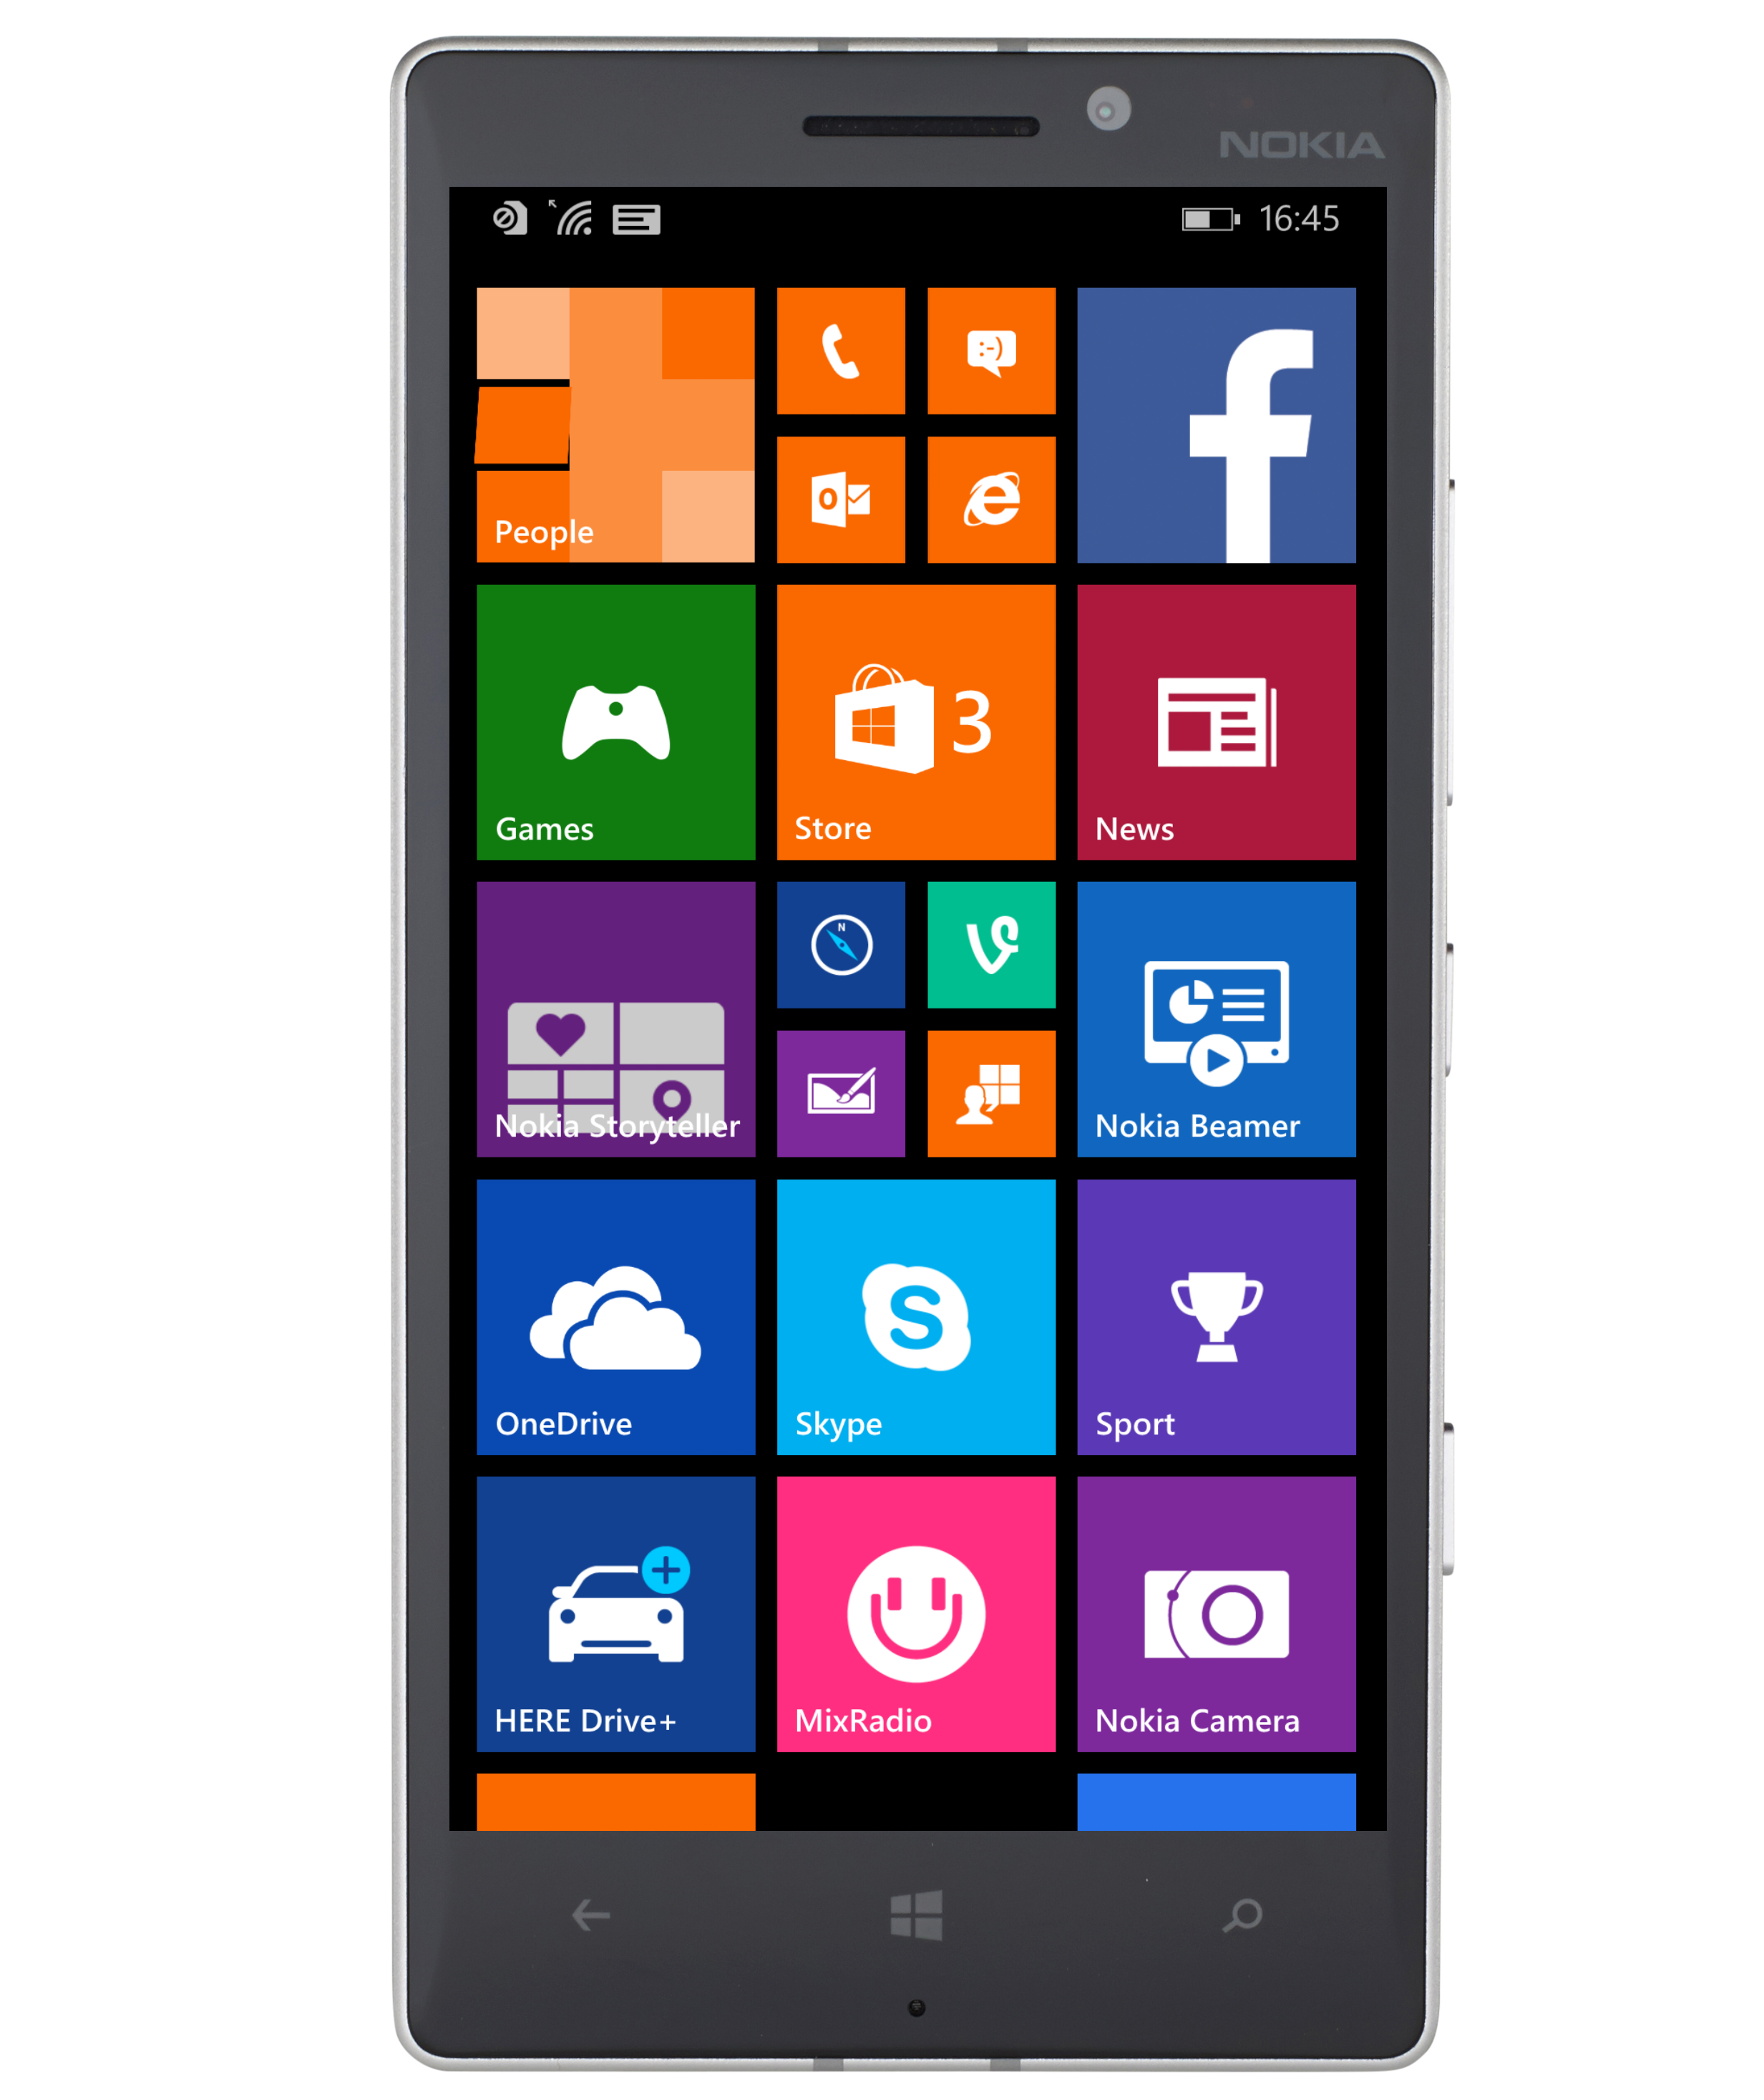 Samsung Beamer Ee Nokia Lumia 930 35 99 And Free Wireless Bundle Christmas